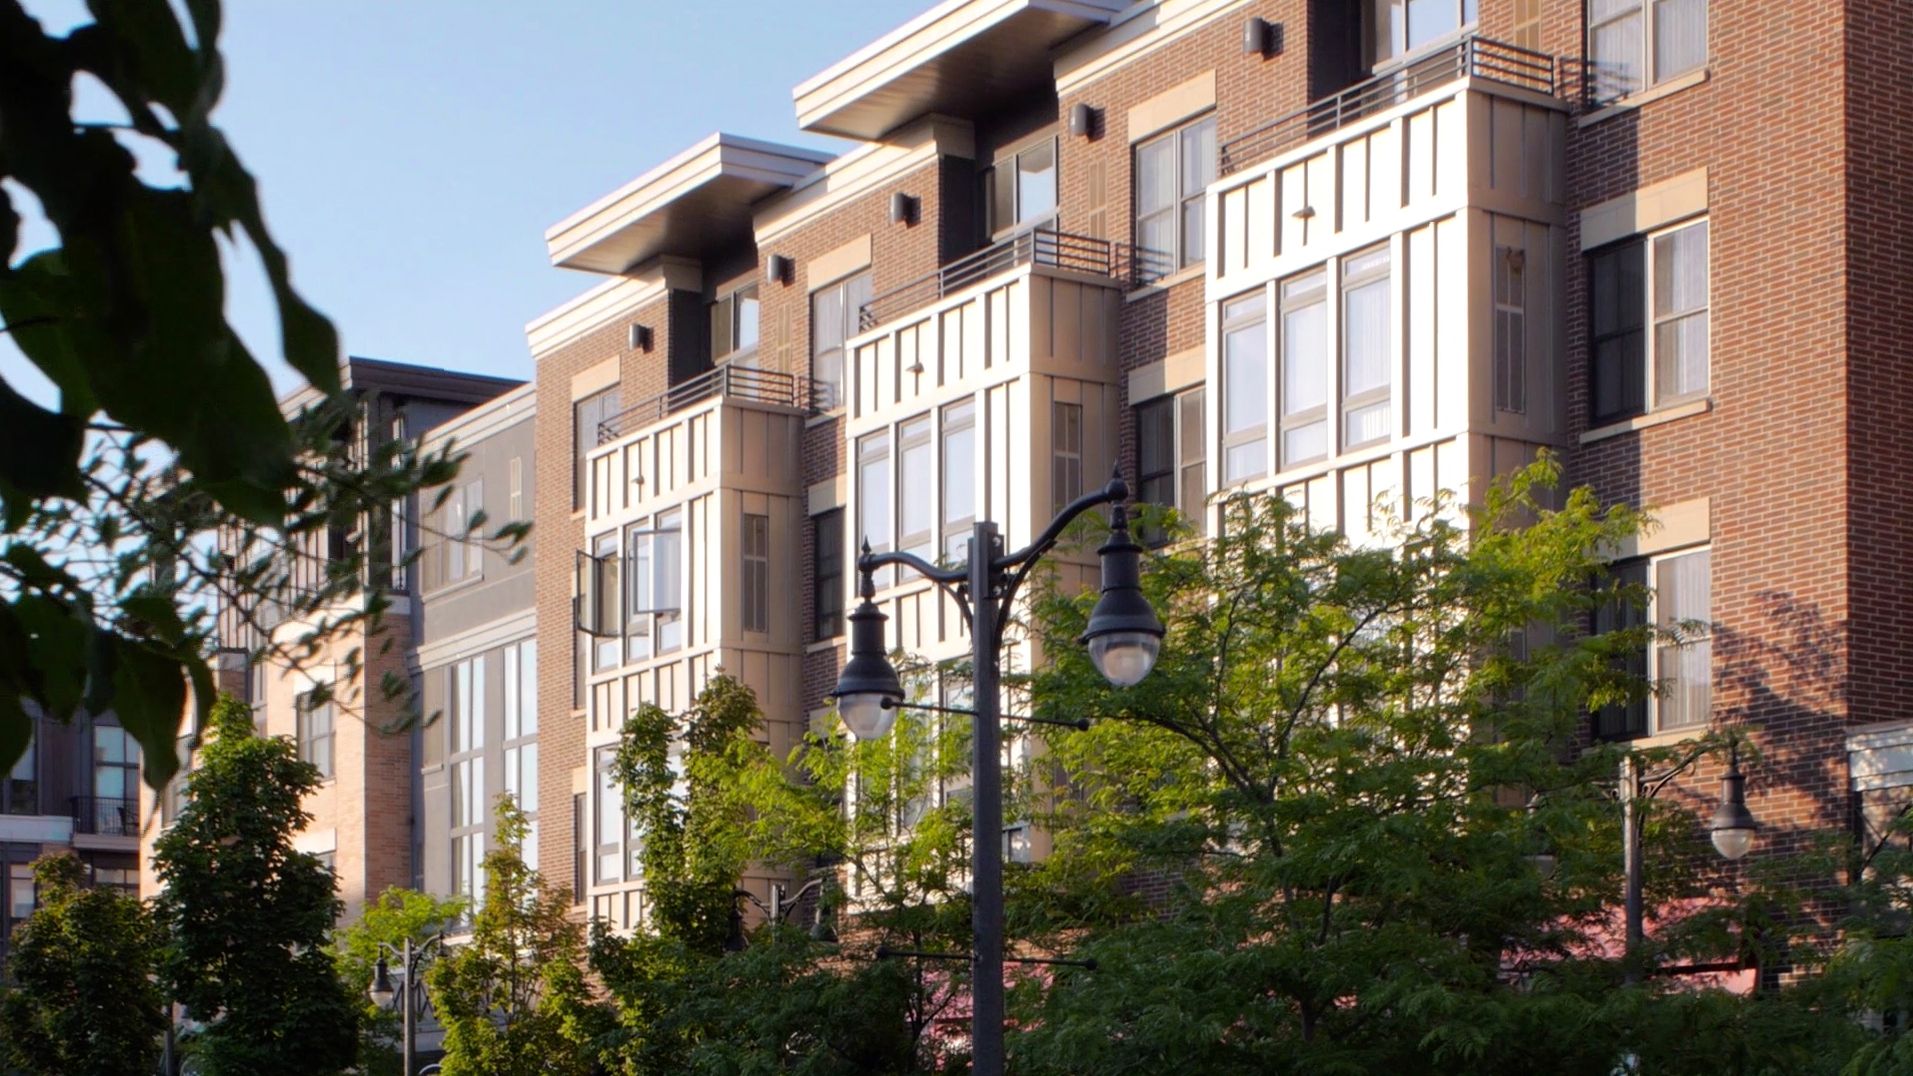 Excelsior & Grand Apartments | Fast Horse, Inc.